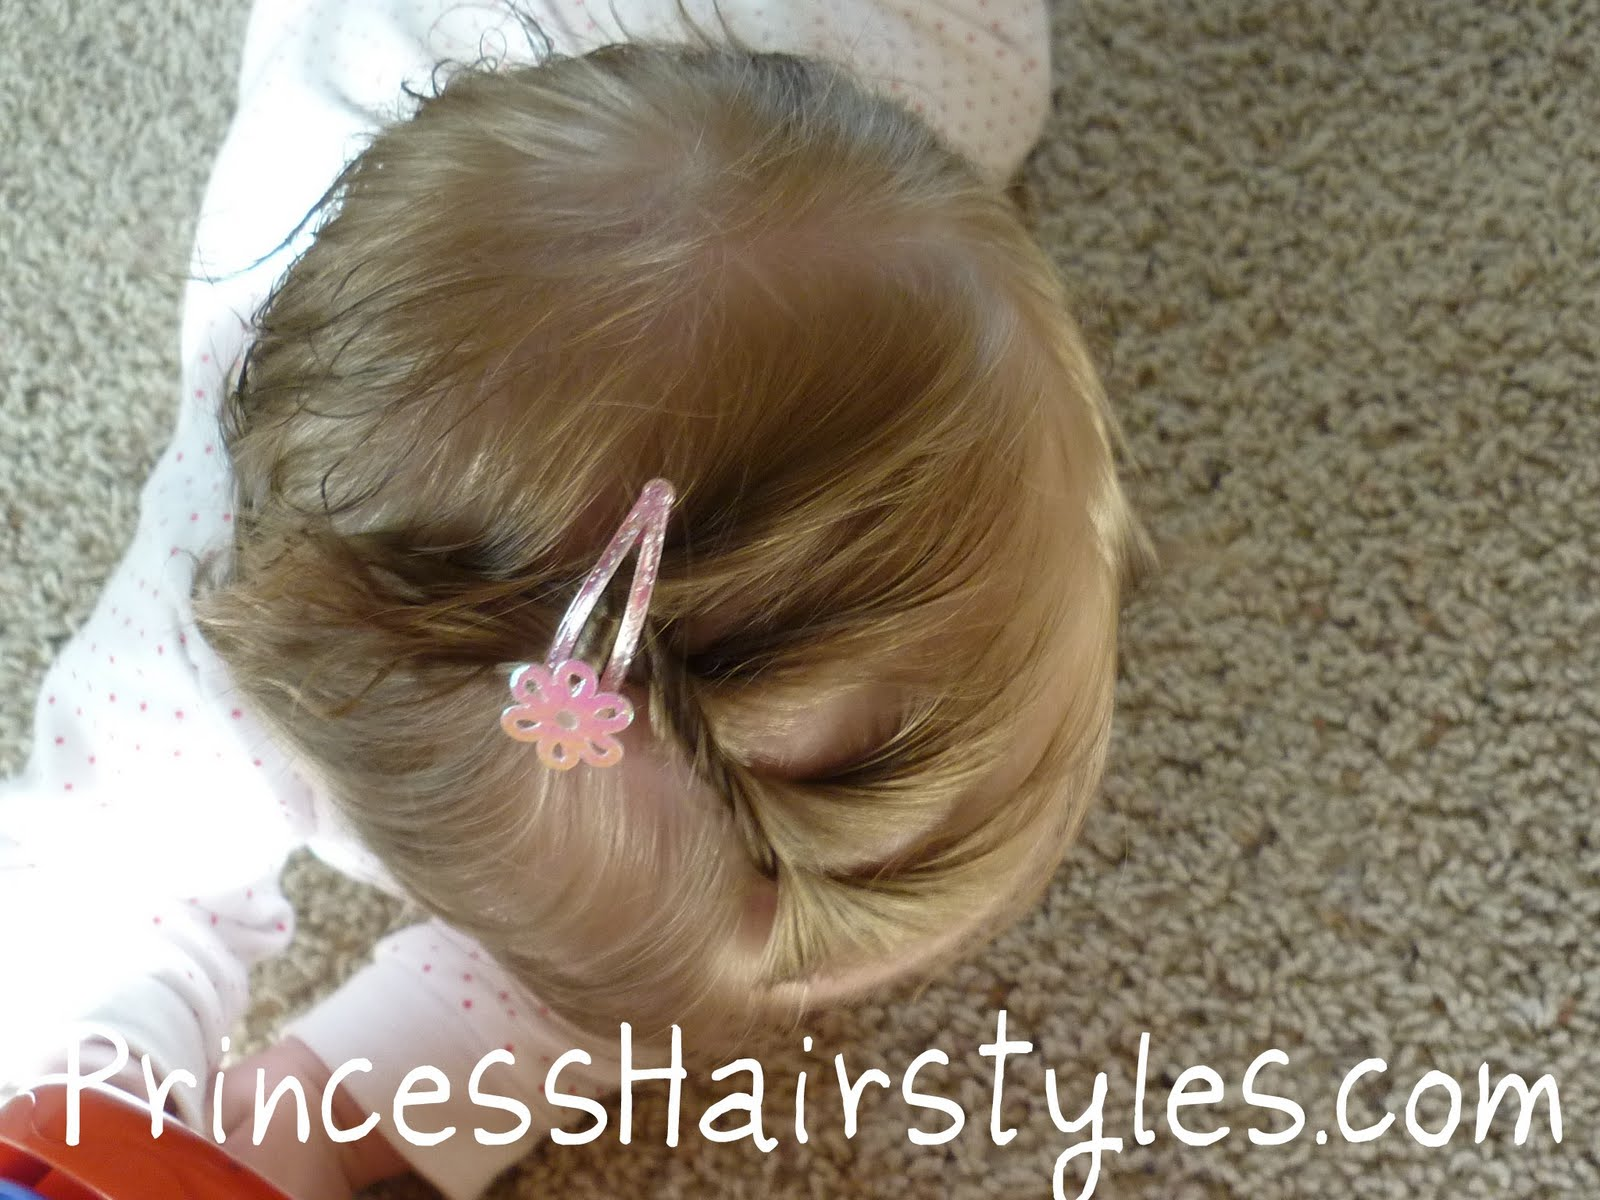 Hairstyles For Babies baby girl hairstyles baby girls hype hair kids natural styles hair styles autumn natural hair creative Infant Hairstyle